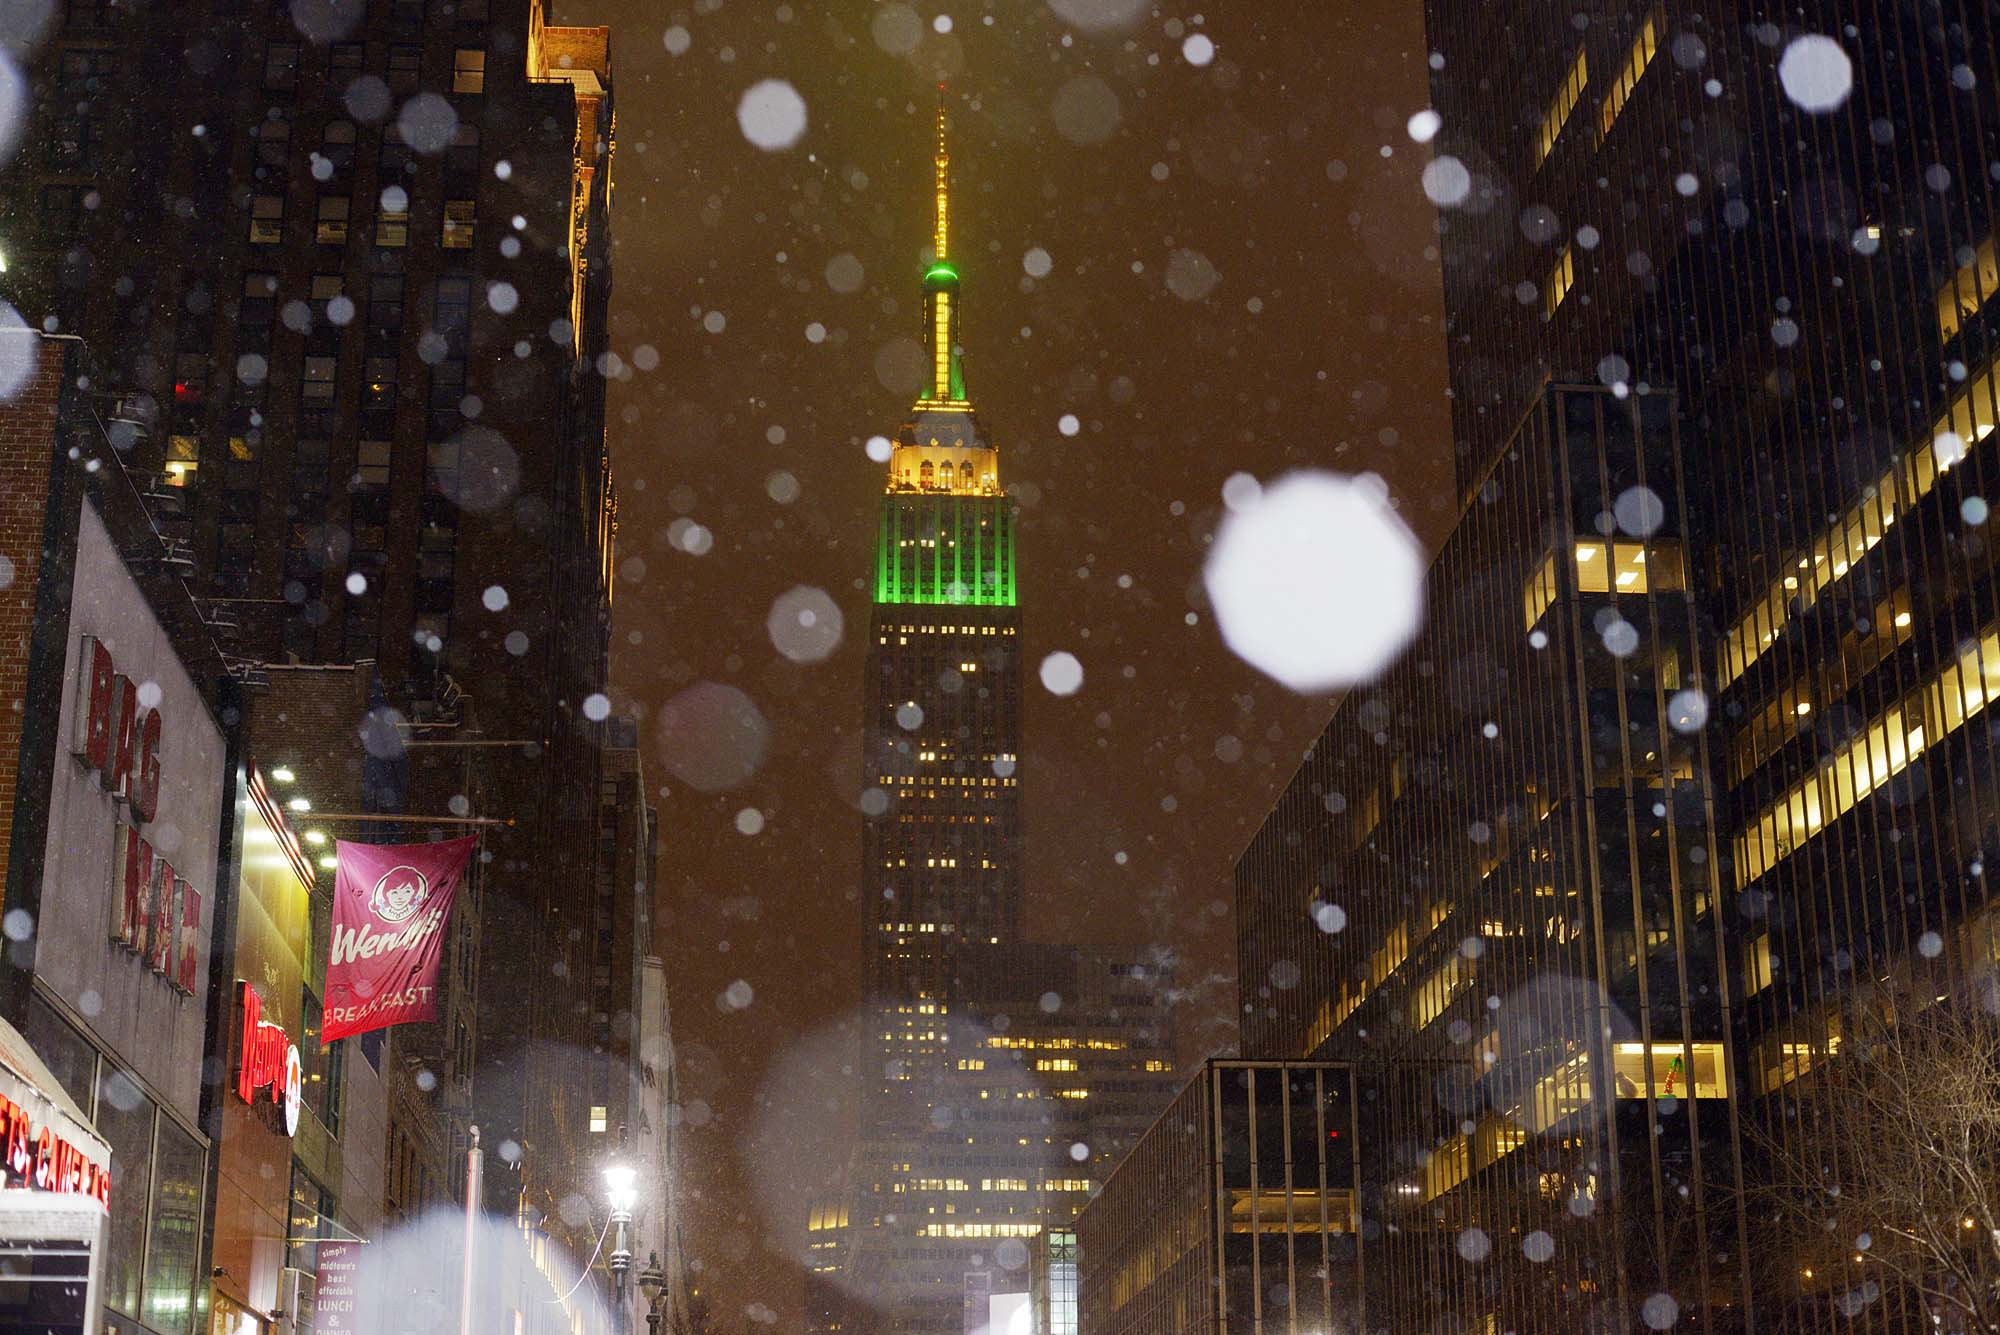 Storm unleashes blizzard conditions on parts of Northeast